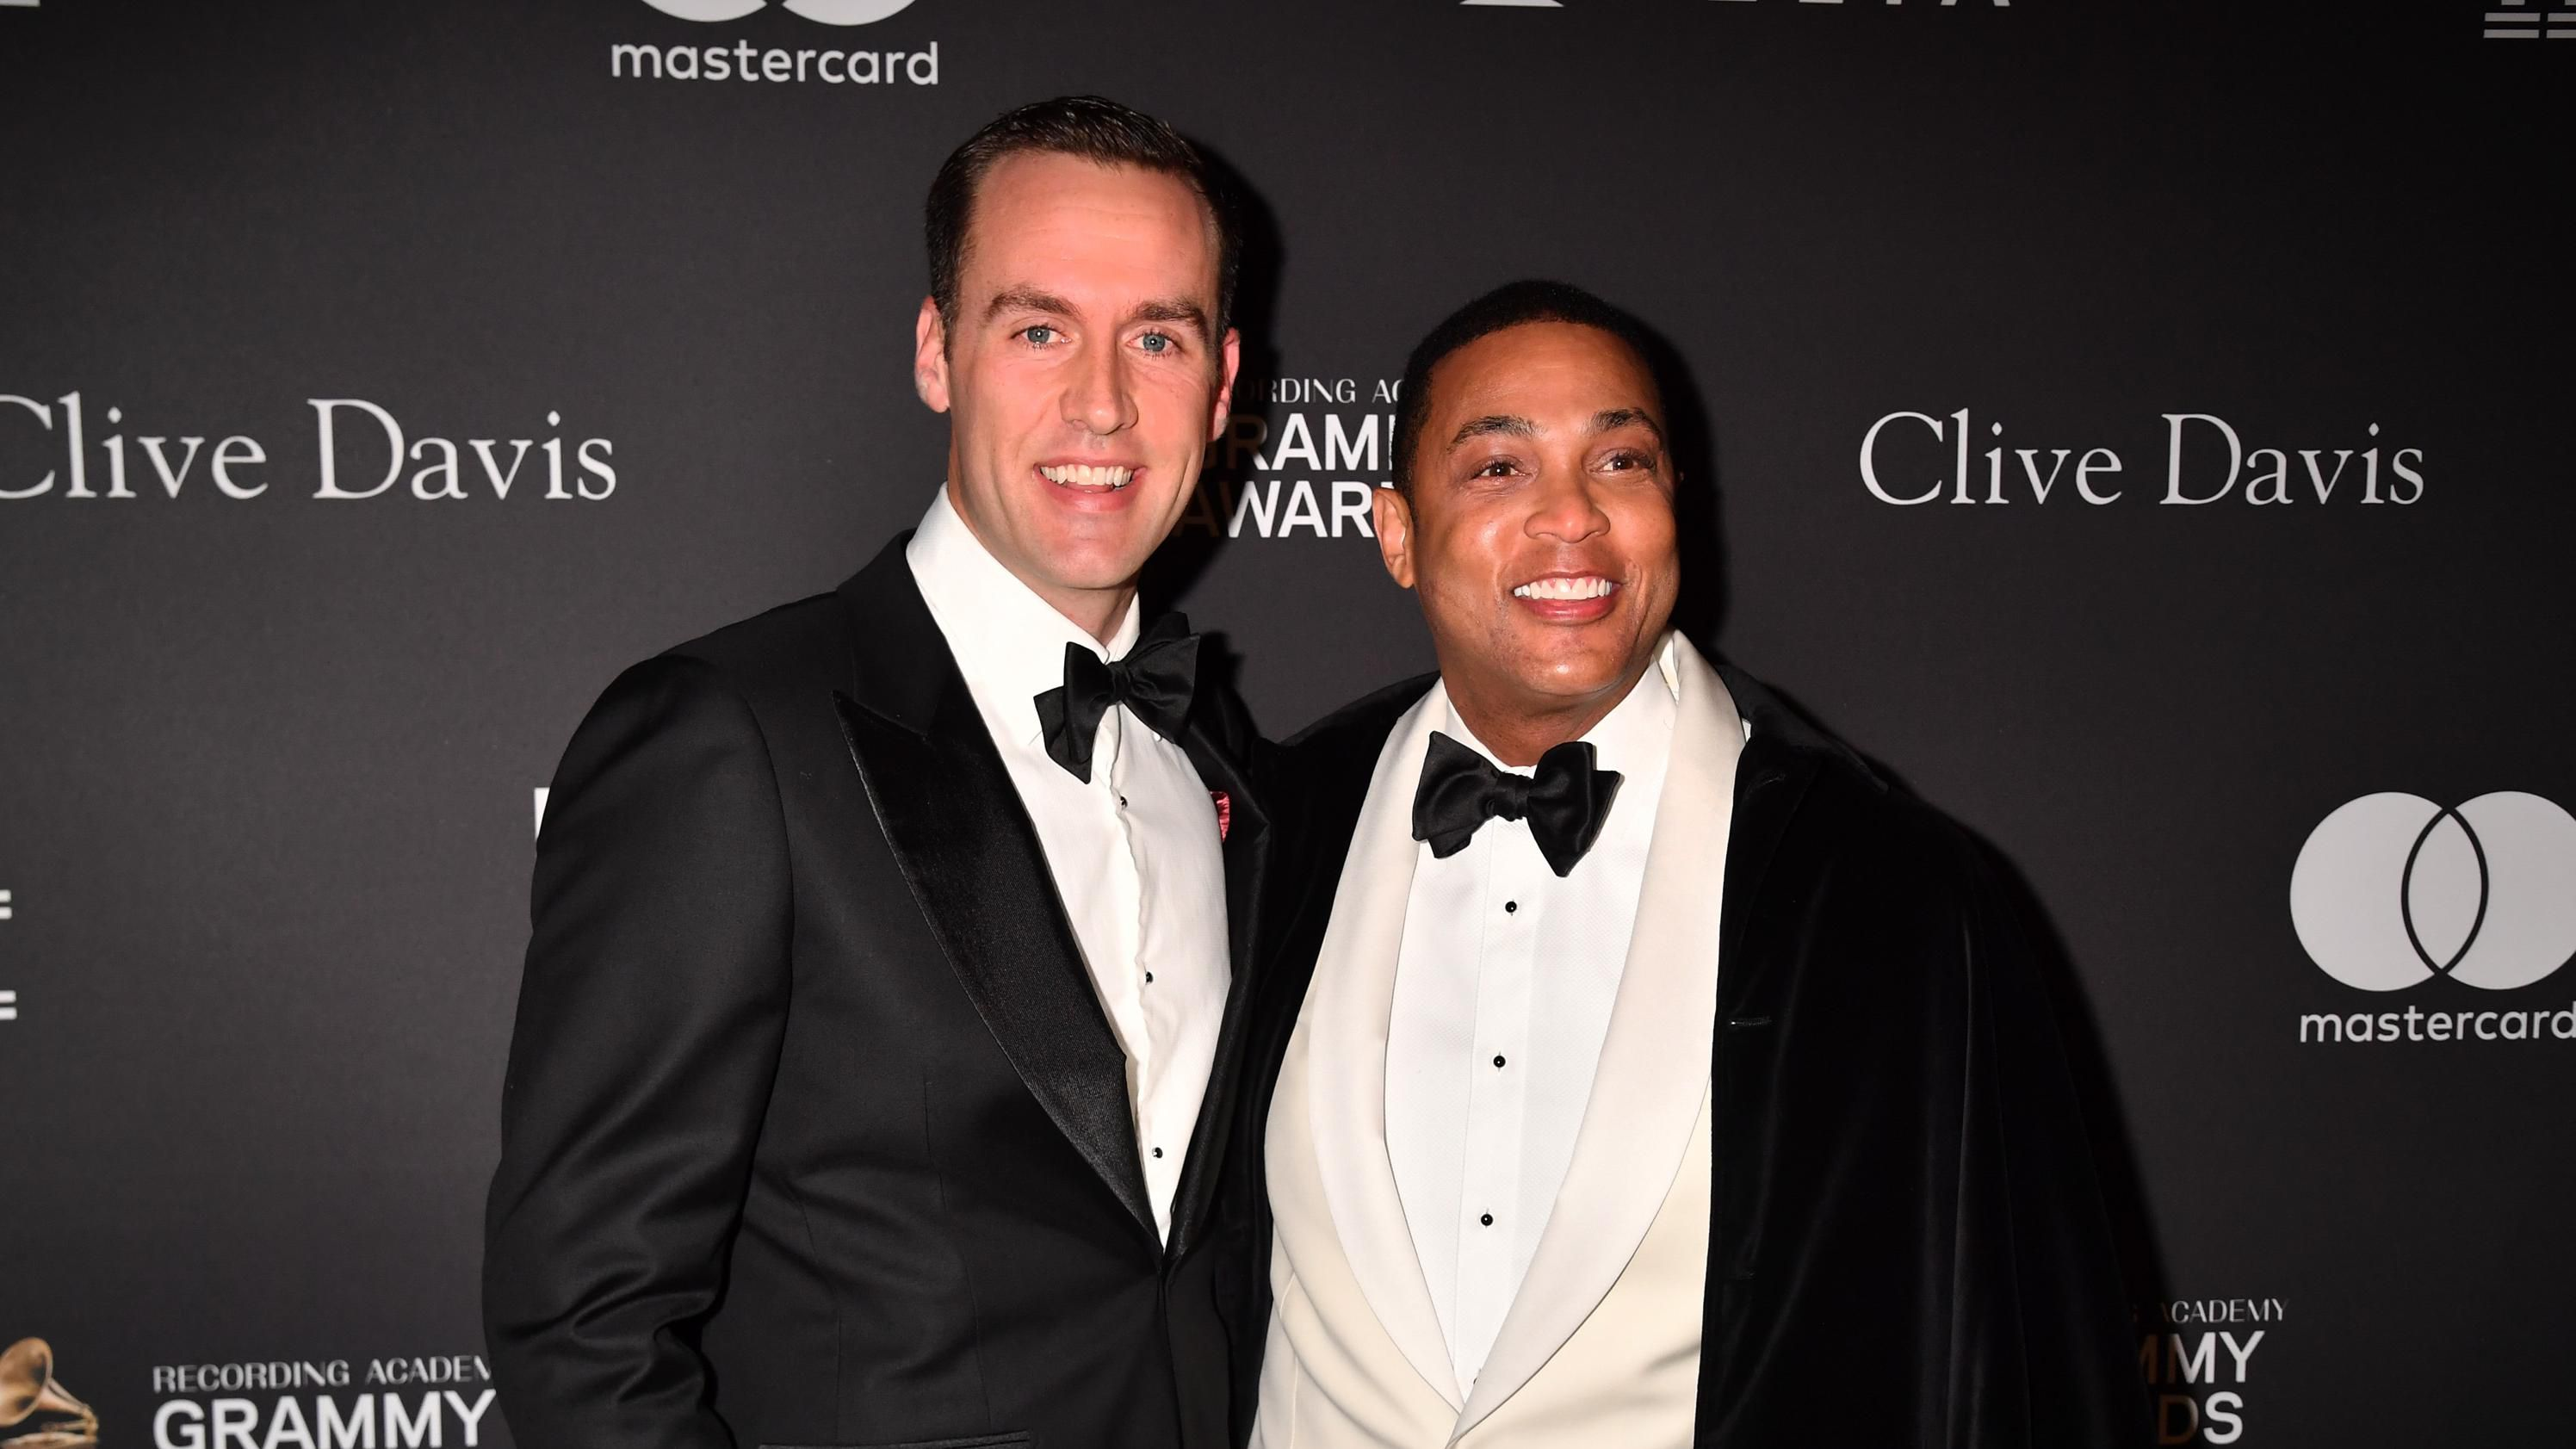 Cnn Anchor Don Lemon And Tim Malone Are Engaged